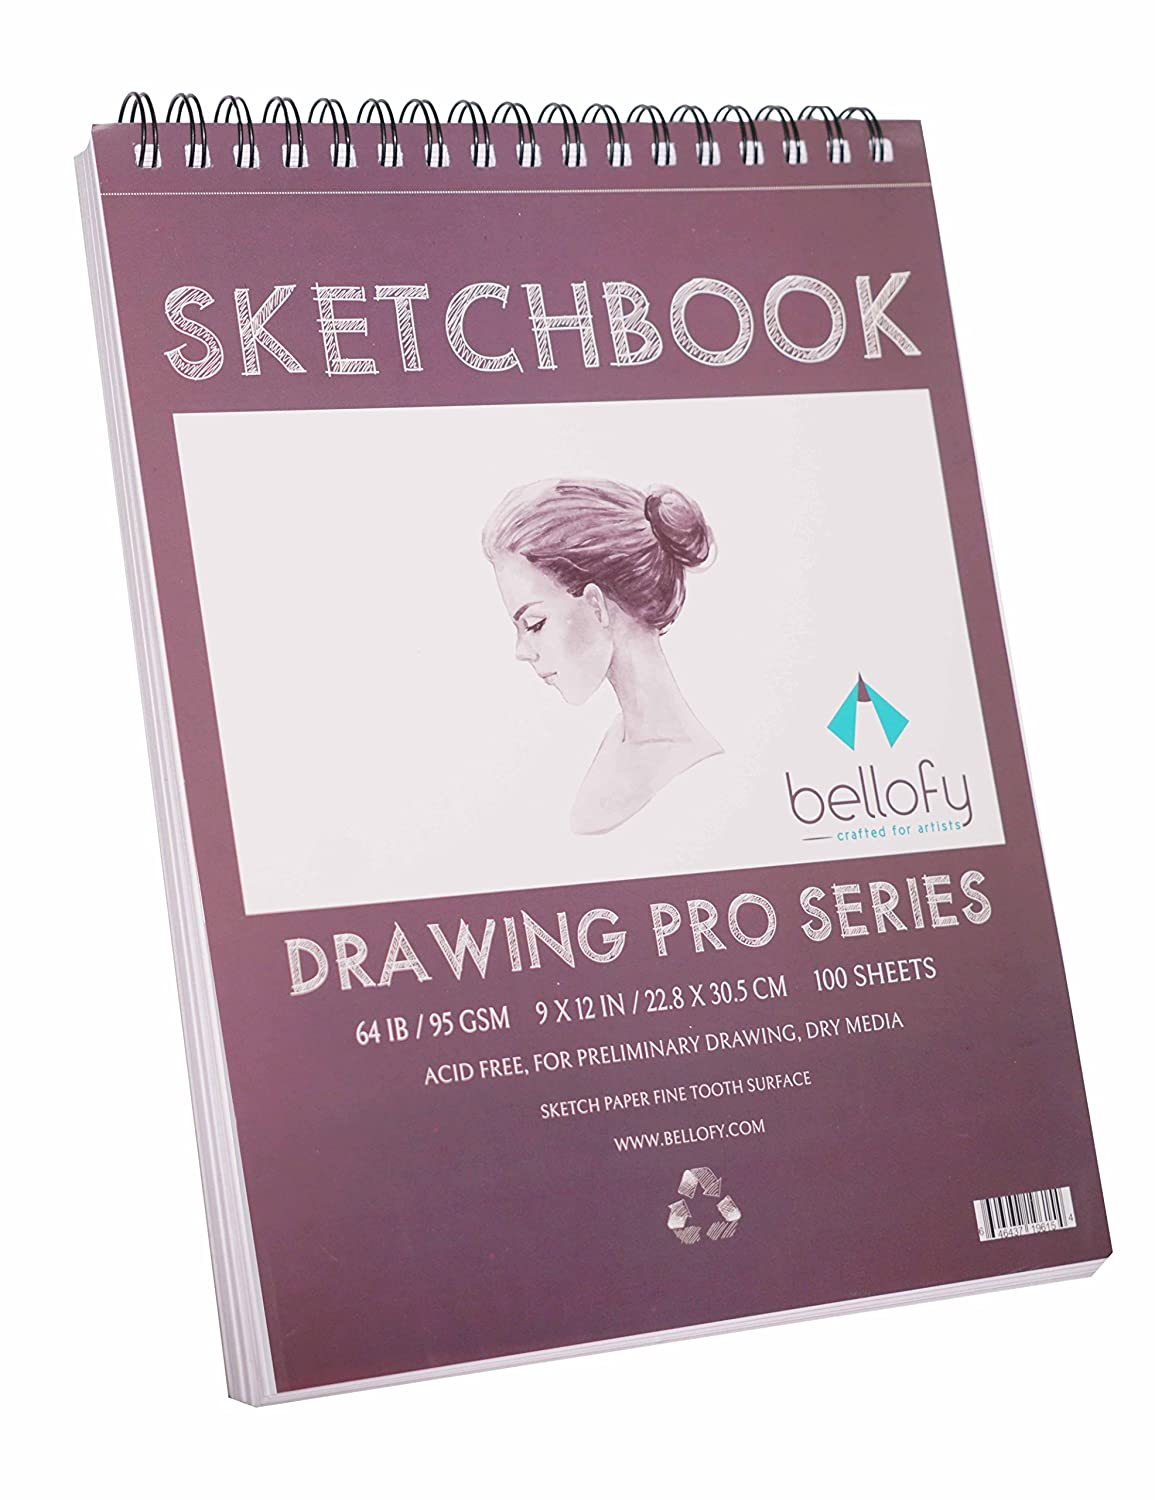 Bellofy 9x12-Inch Spiral-Bound Sketchbook for Artists| 100 Sheets for Sketching and Drawing | 64 IB 95 GSM |Micro-Perforated & Acid Free 4336940721